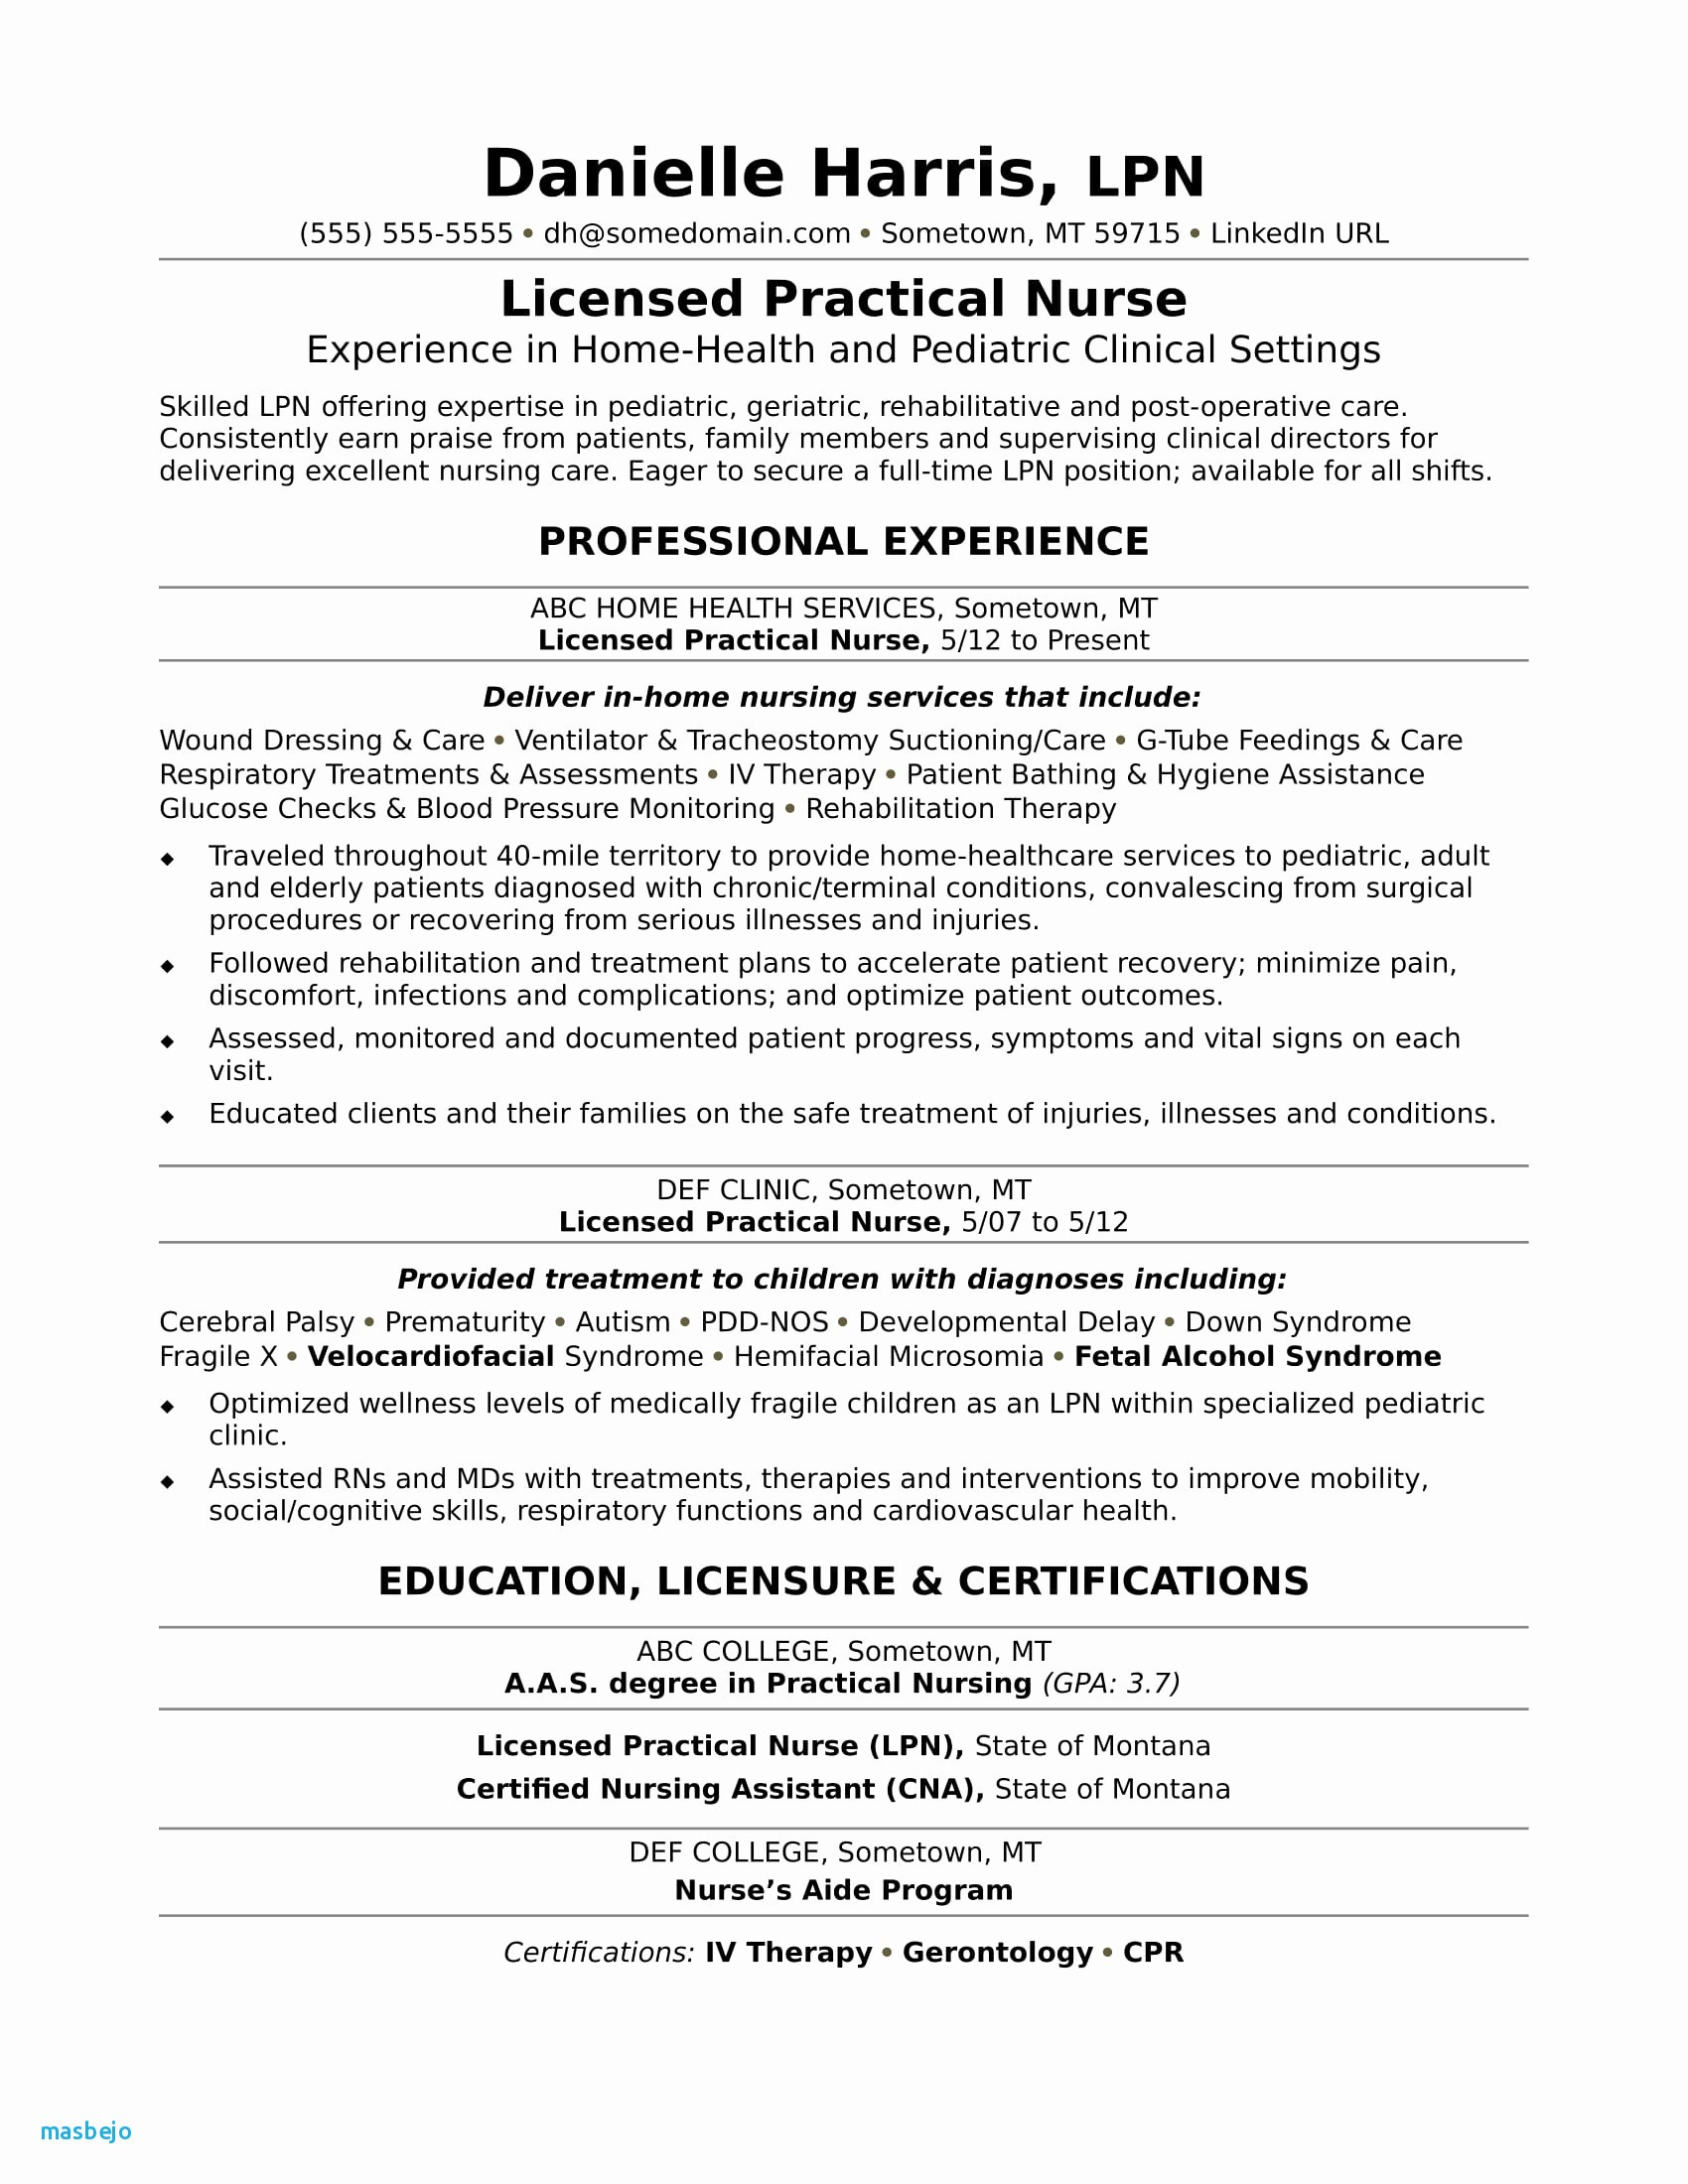 Experienced Nurse Resume Template - Sample Resume for A New Registered Nurse Resume Resume Examples